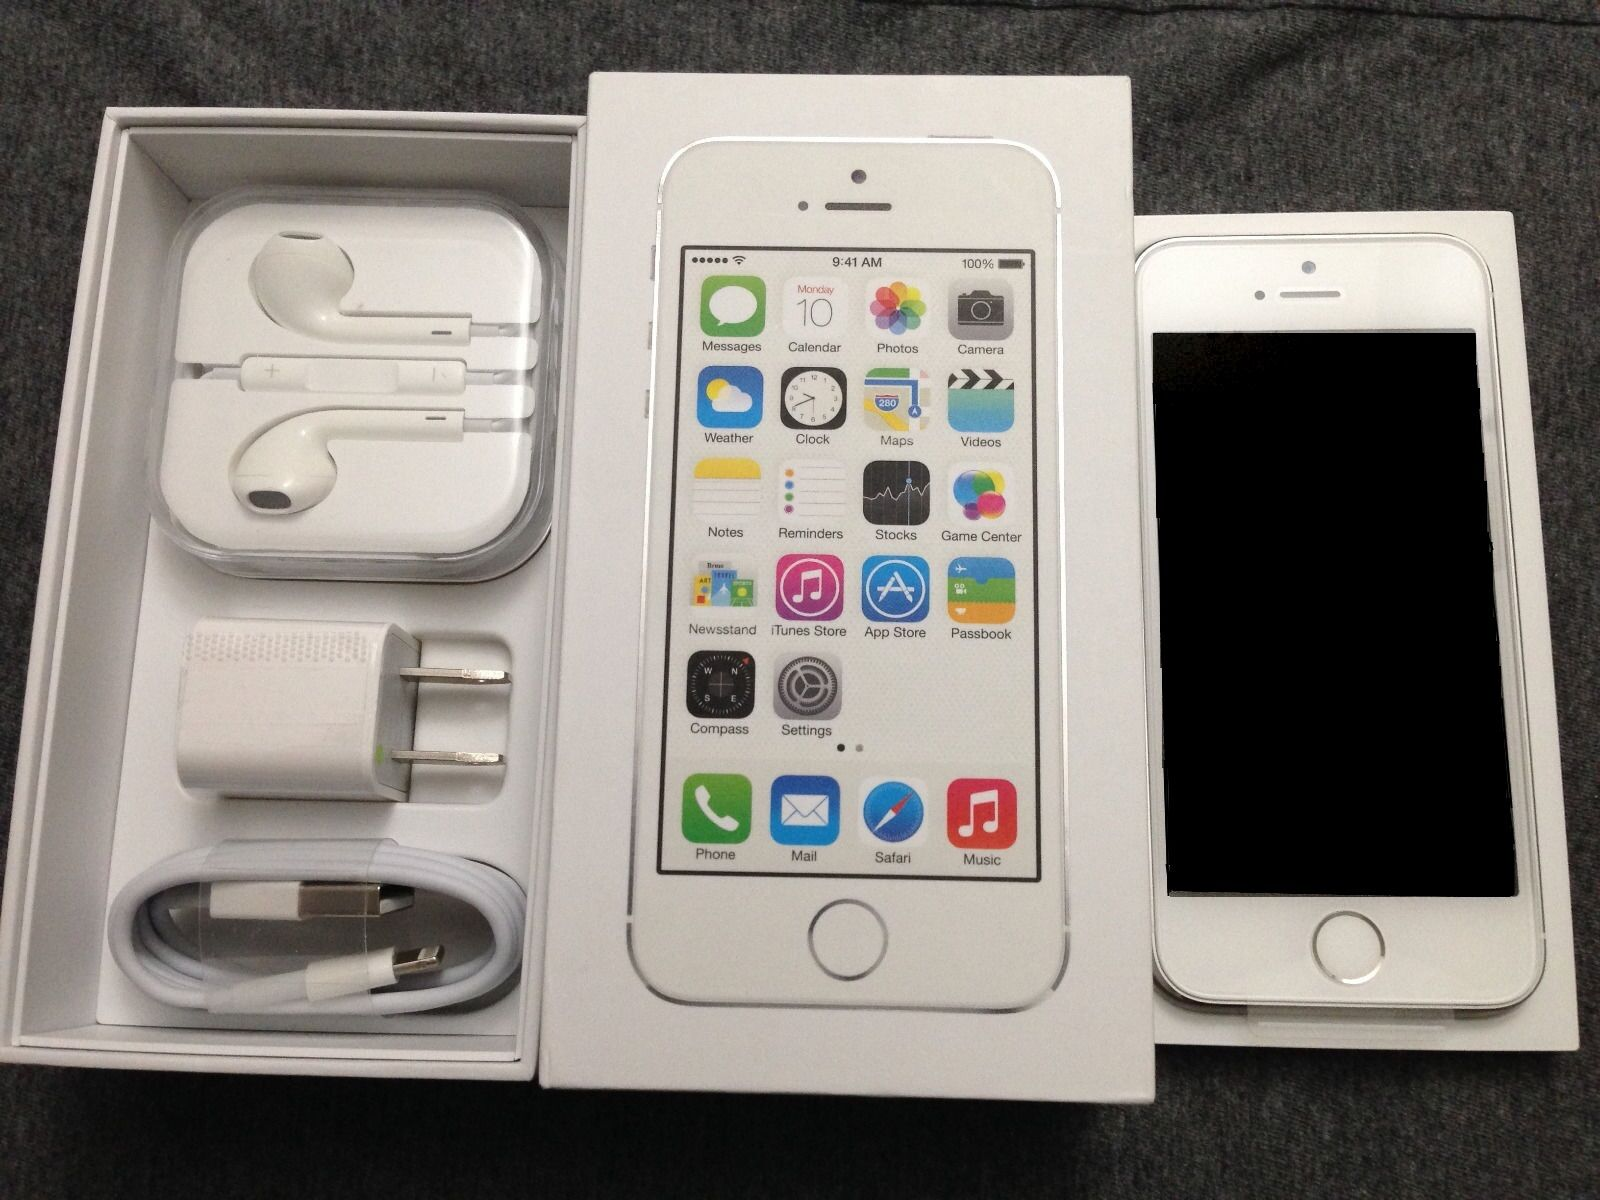 Iphone 5s 16gb brand new unlocked genuine apple iphone best price in - Brand New Lowest Price